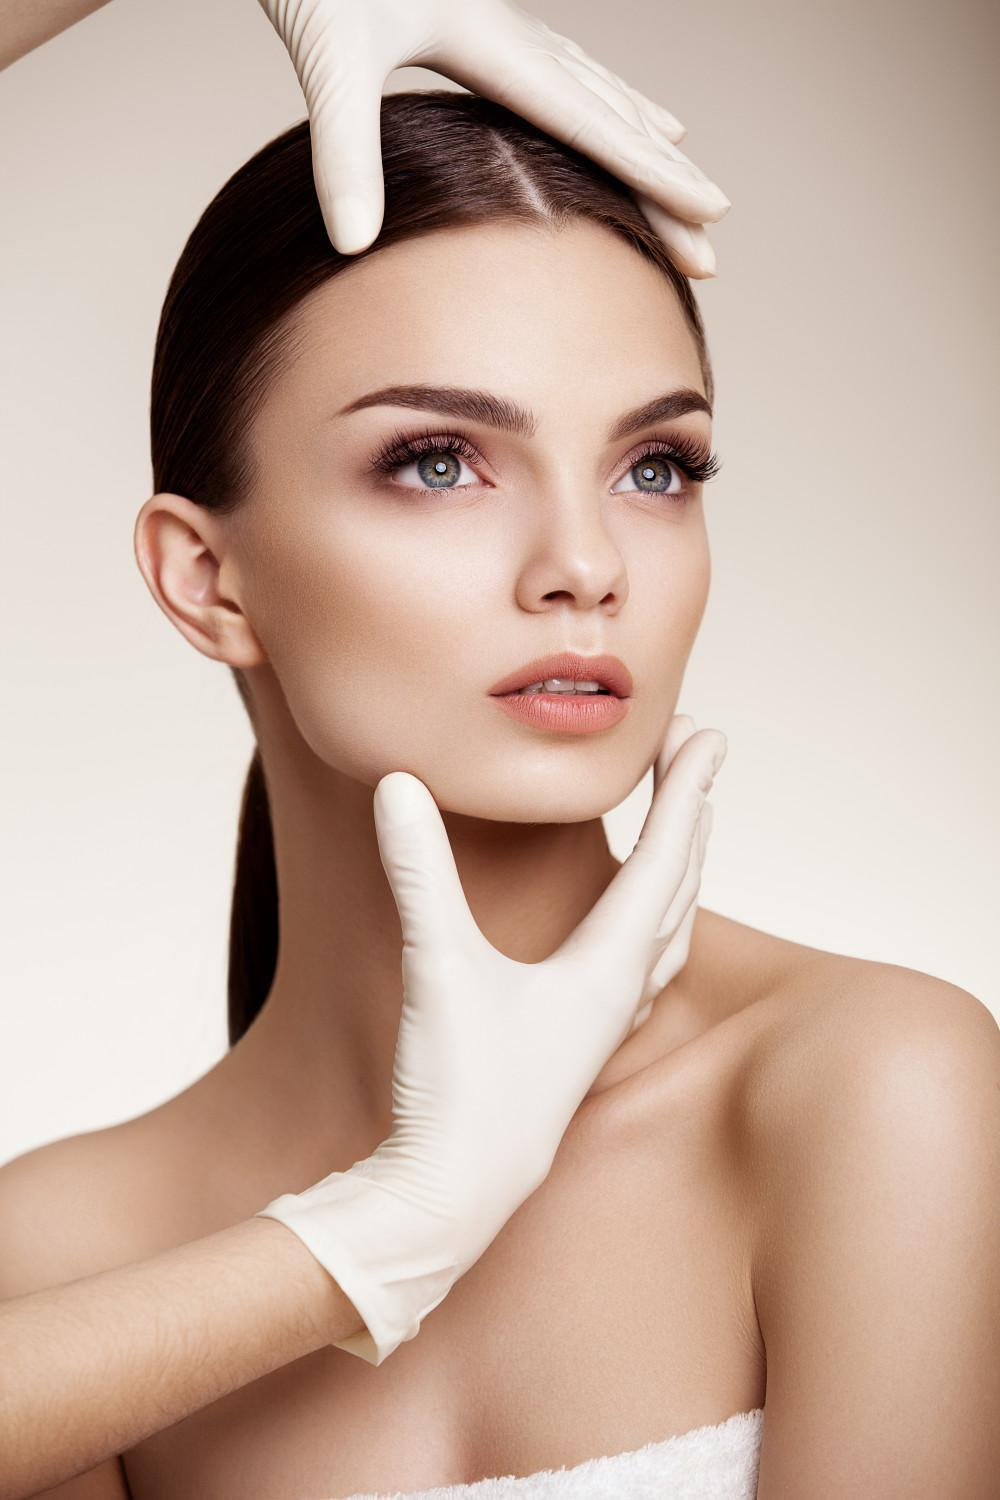 revisions,  Rhinoplasty, Robert A. Guida, MD,